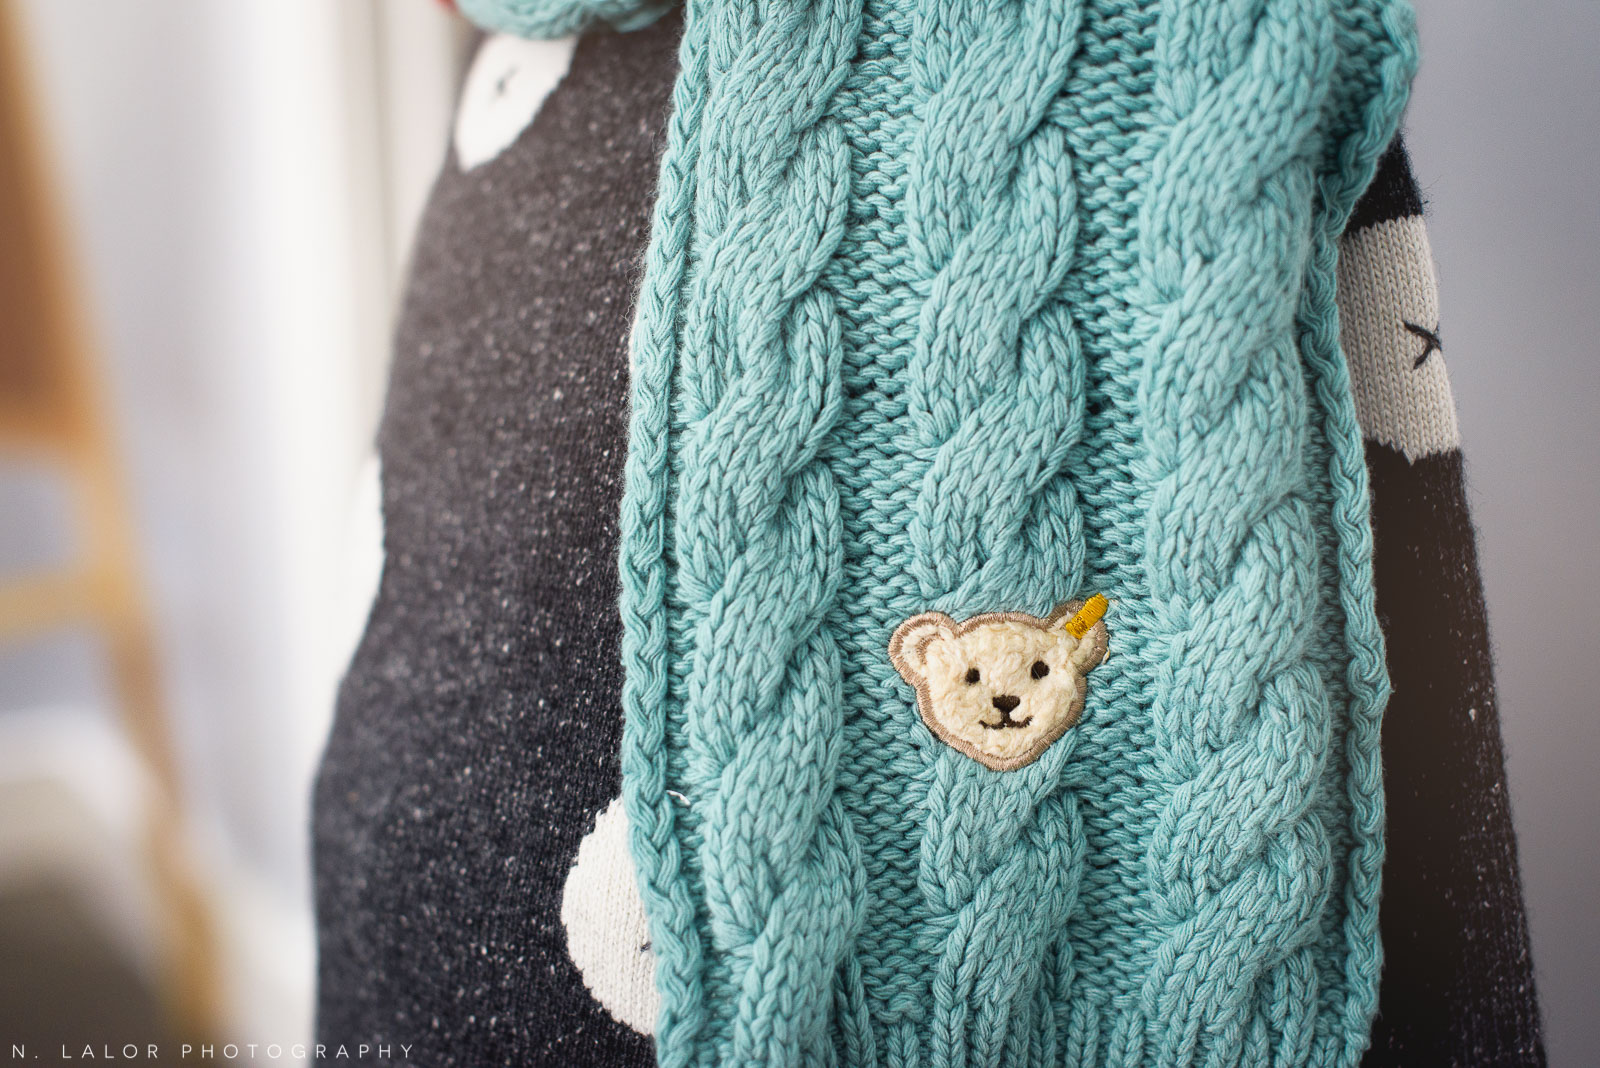 Fashionable and cute knit scarf by Steiff - only at Ella & Henry in New Canaan. Photo by N. Lalor Photography.